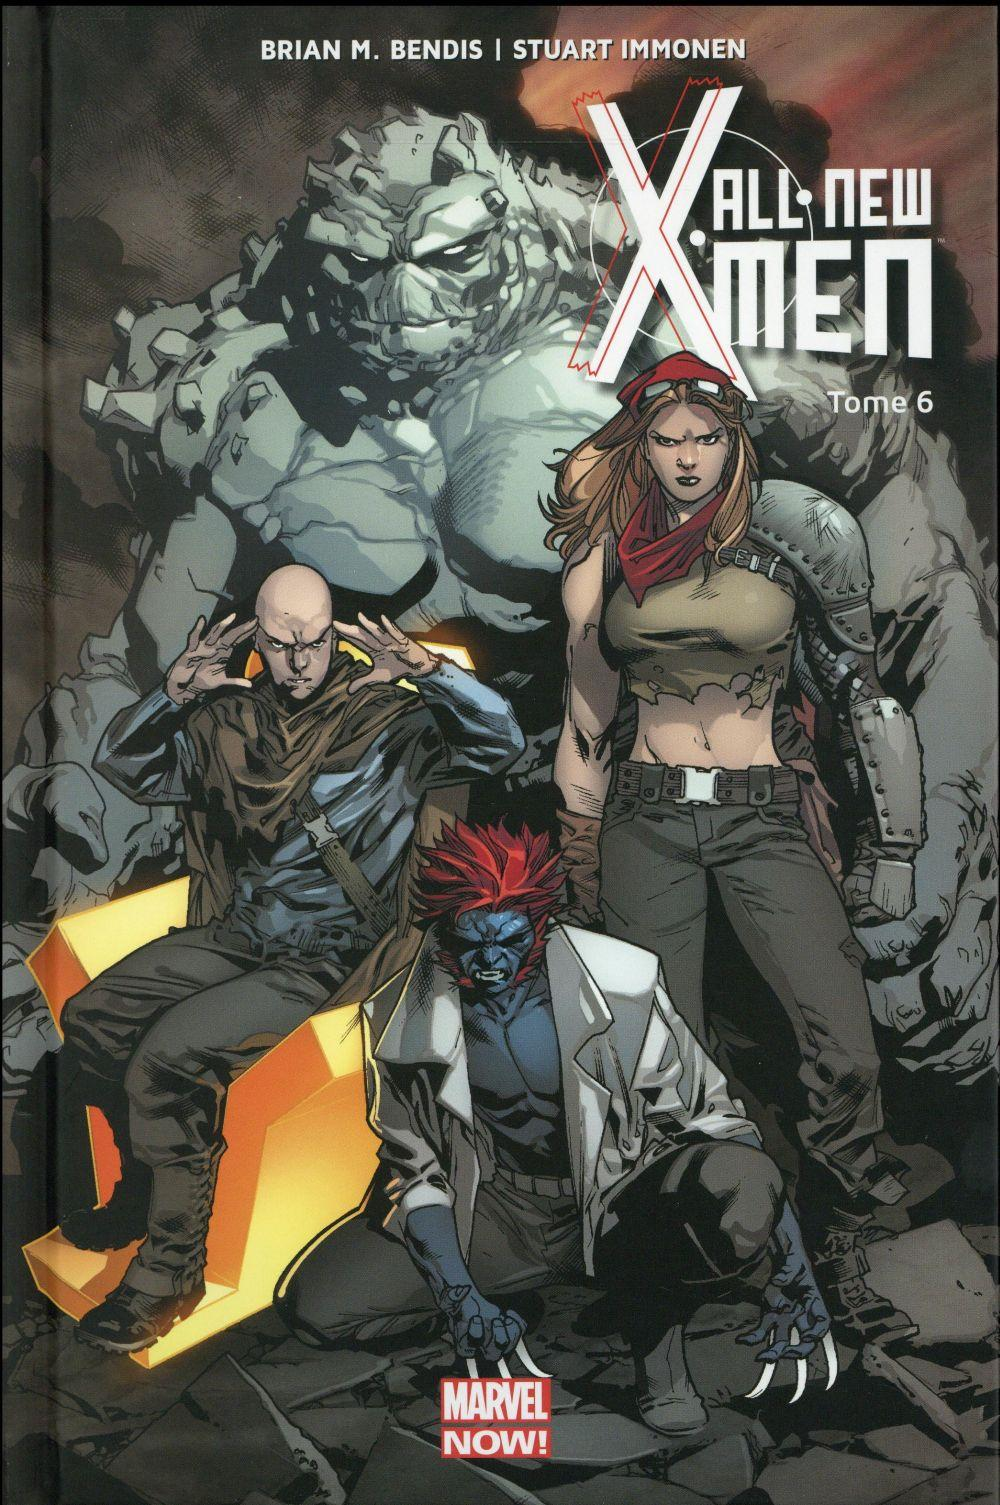 All new X-Men T.6  - Brian Michael Bendis  - Stuart Immonen  - Sara Pichelli